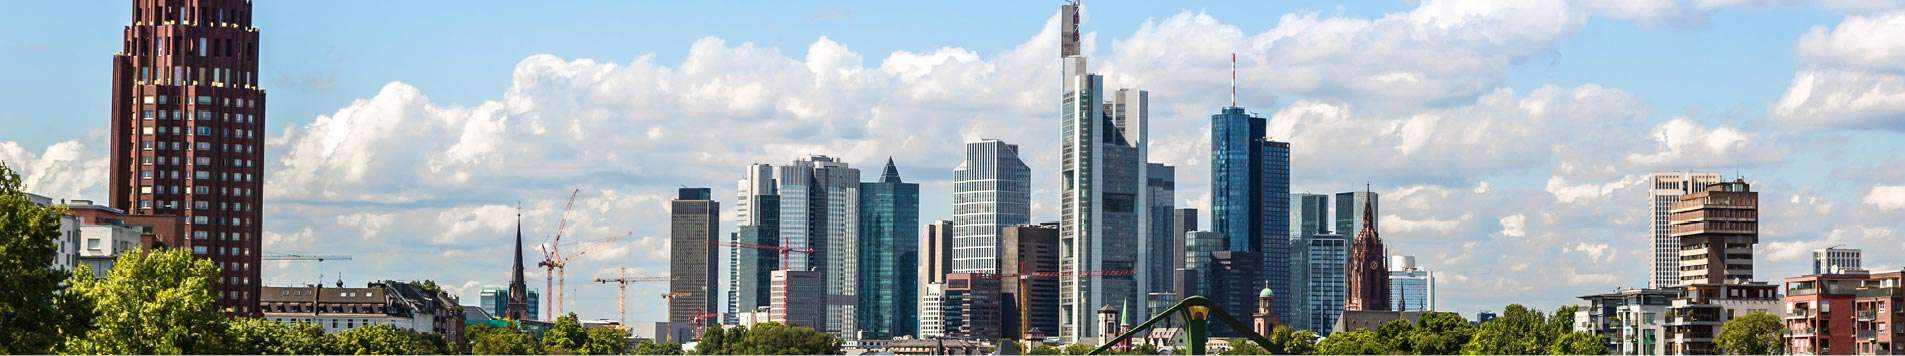 IPO Ad hoc Announcments Frankfurt City - Germany